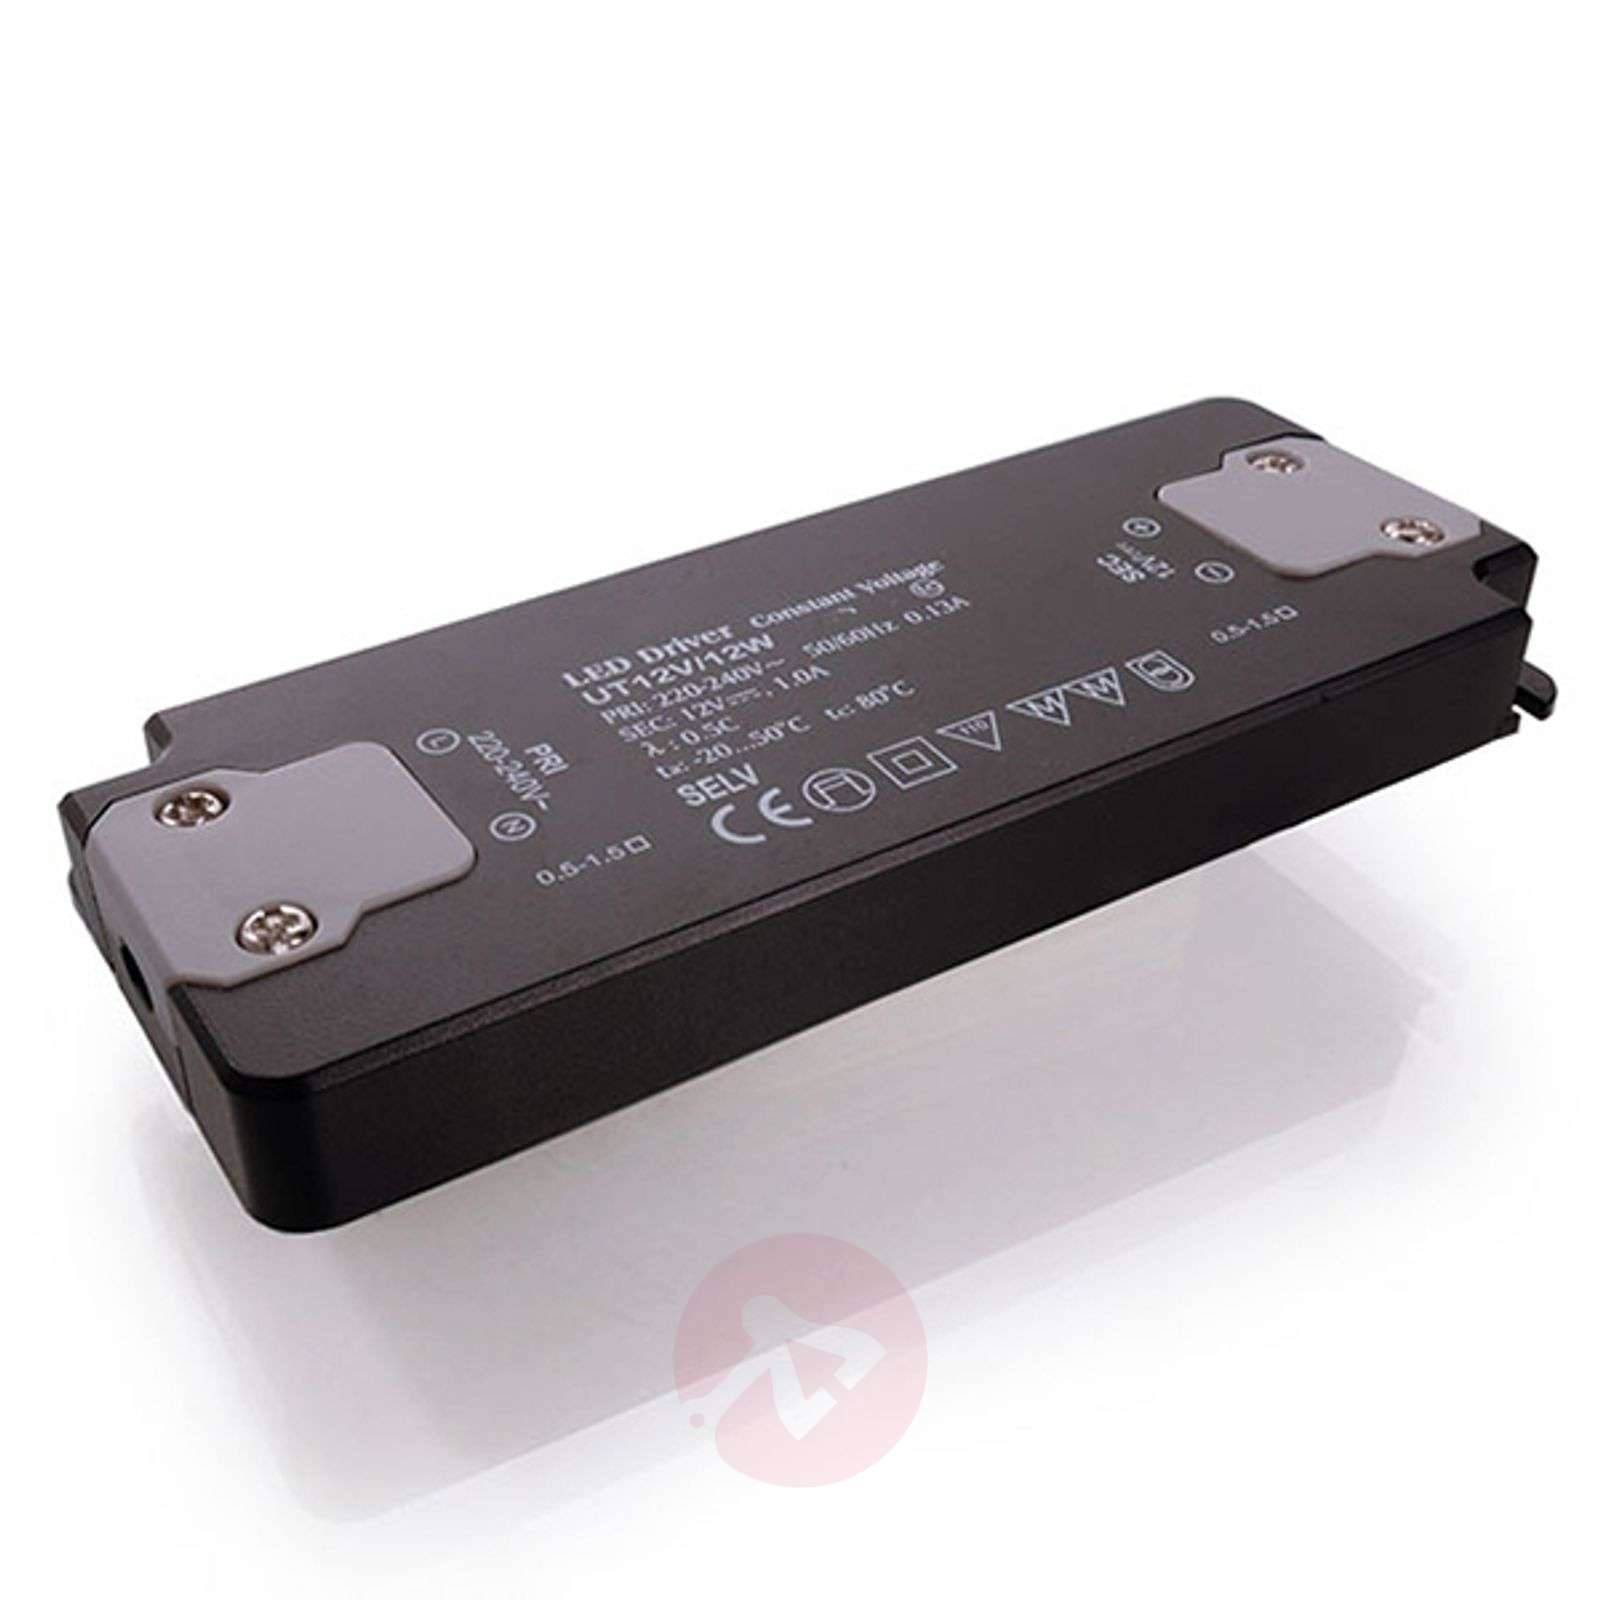 Switched Mode Power Supply Unit 12 V W Electronic Which Is Based 2500147 01